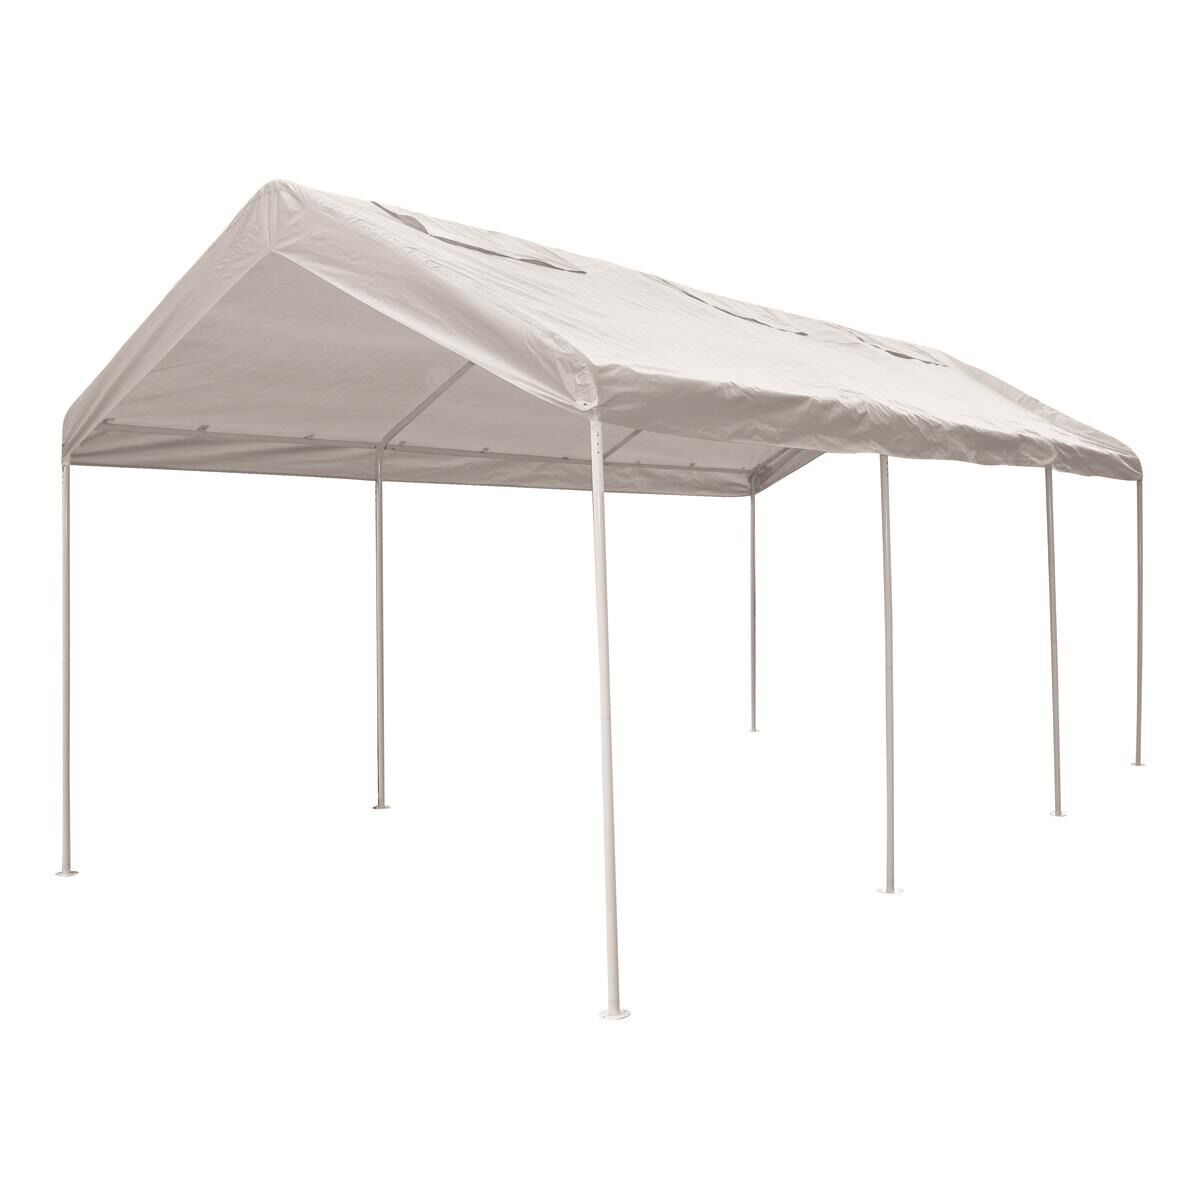 CoverALL Carport Replacement Tarp 3 X 6m White Supercheap Auto